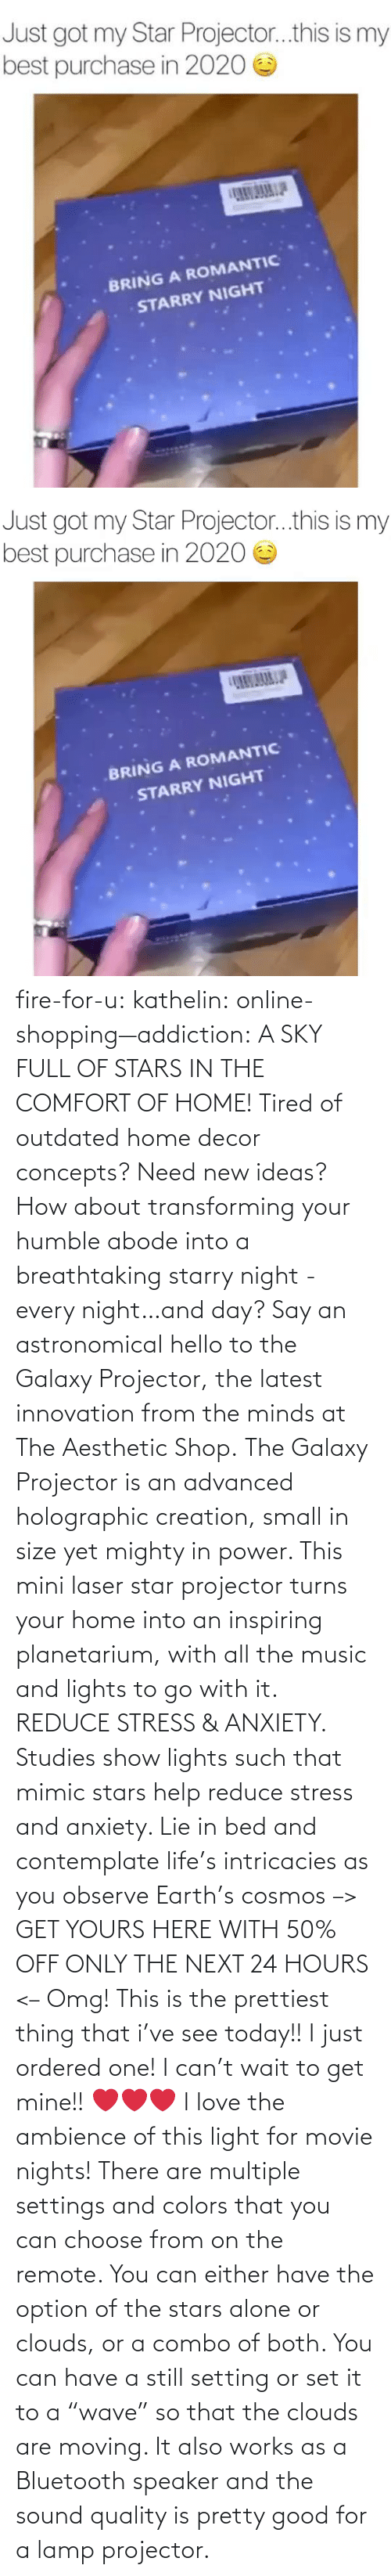 "there: fire-for-u:  kathelin: online-shopping—addiction:  A SKY FULL OF STARS IN THE COMFORT OF HOME! Tired of outdated home decor concepts? Need new ideas? How about transforming your humble abode into a breathtaking starry night - every night…and day? Say an astronomical hello to the Galaxy Projector, the latest innovation from the minds at The Aesthetic Shop. The Galaxy Projector is an advanced holographic creation, small in size yet mighty in power. This mini laser star projector turns your home into an inspiring planetarium, with all the music and lights to go with it. REDUCE STRESS & ANXIETY. Studies show lights such that mimic stars help reduce stress and anxiety. Lie in bed and contemplate life's intricacies as you observe Earth's cosmos  –> GET YOURS HERE WITH 50% OFF ONLY THE NEXT 24 HOURS <–   Omg! This is the prettiest thing that i've see today!! I just ordered one! I can't wait to get mine!! ❤️️❤️️❤️️  I love the ambience of this light for movie nights! There are multiple settings and colors that you can choose from on the remote. You can either have the option of the stars alone or clouds, or a combo of both. You can have a still setting or set it to a ""wave"" so that the clouds are moving. It also works as a Bluetooth speaker and the sound quality is pretty good for a lamp projector."